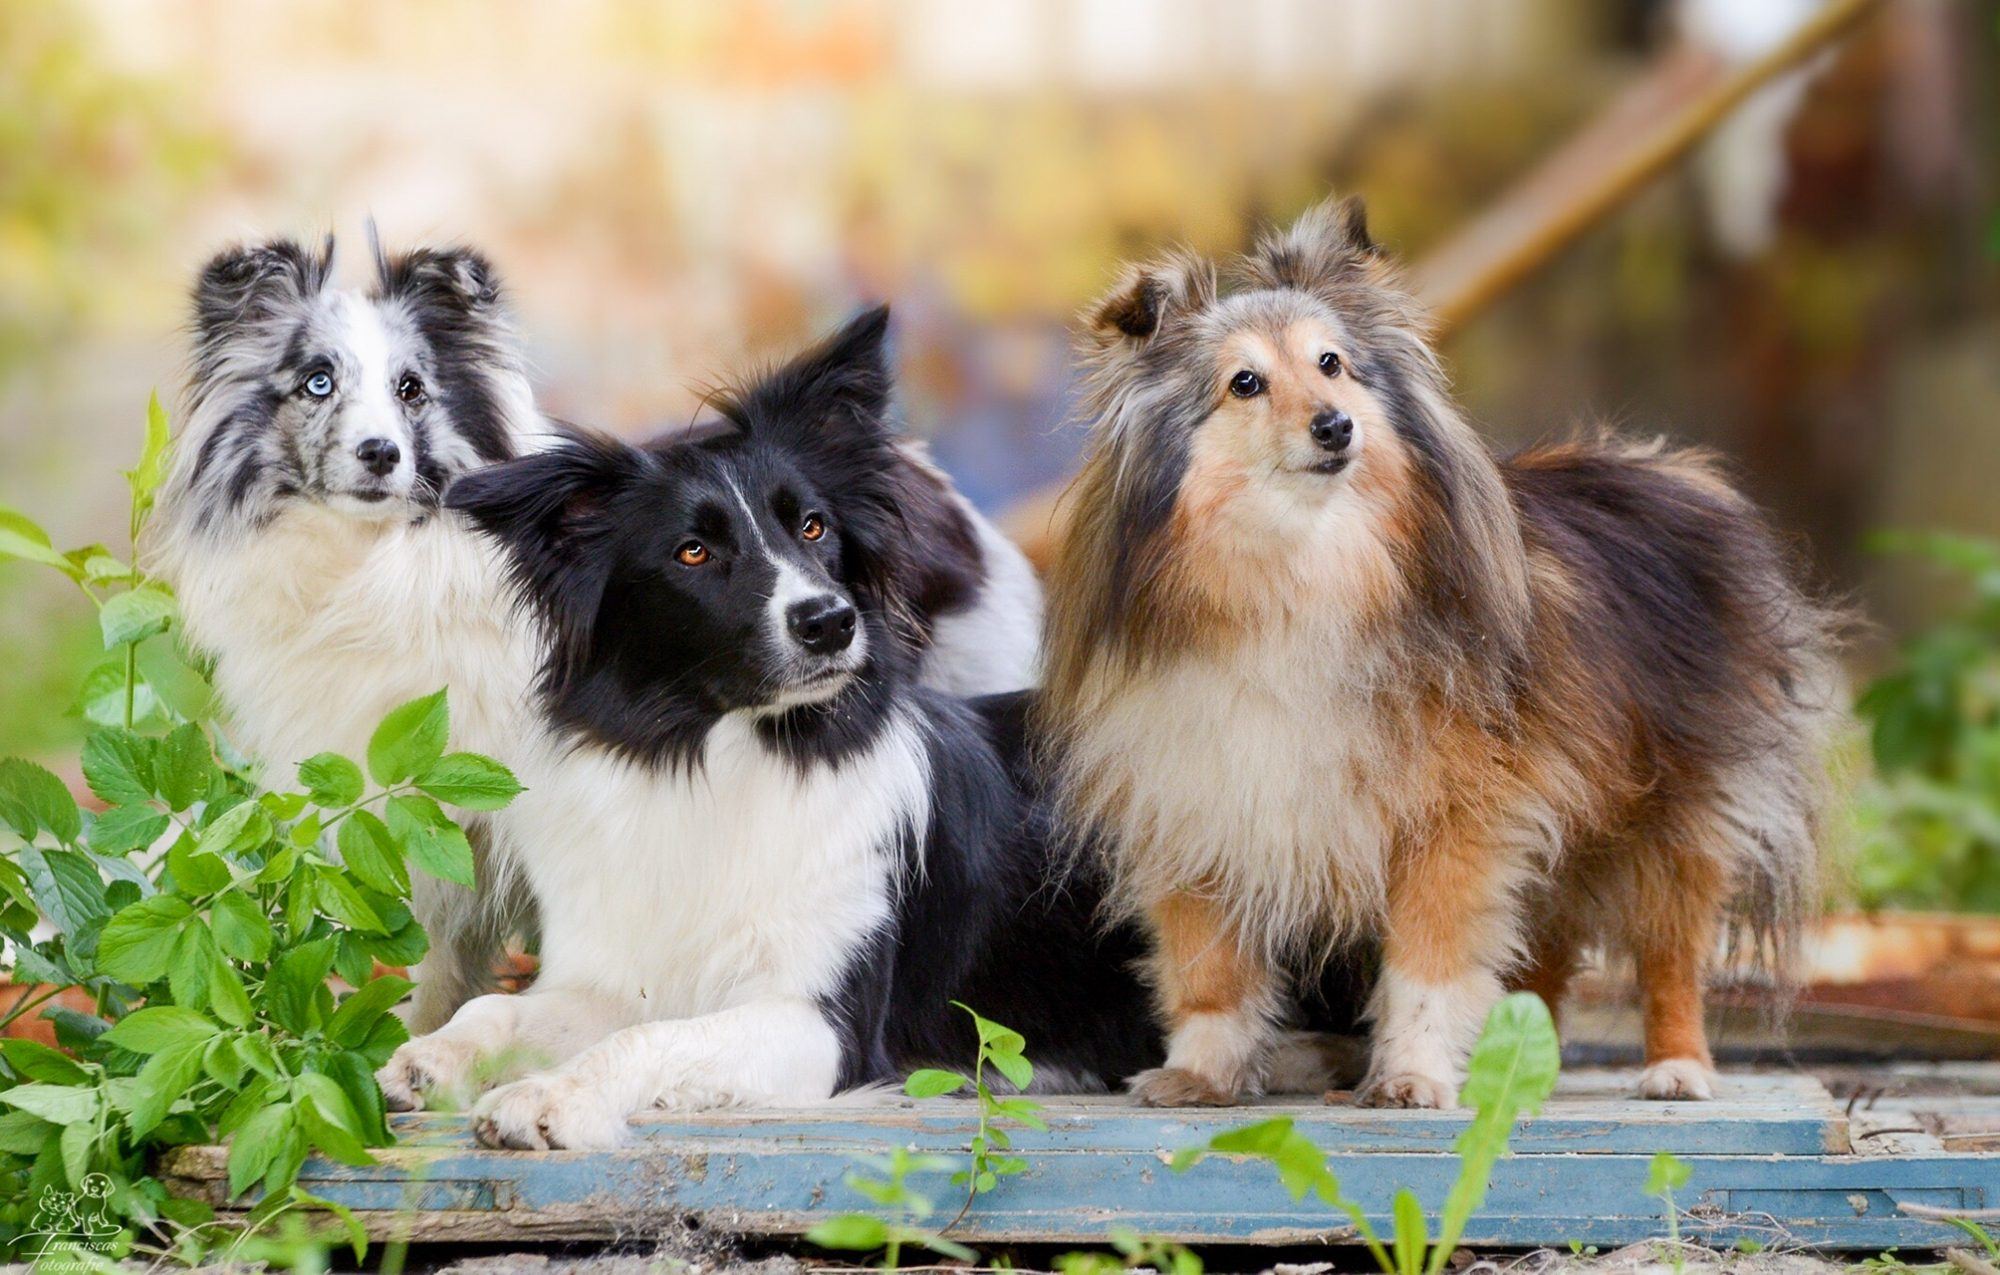 Three dogs in backyard at attention